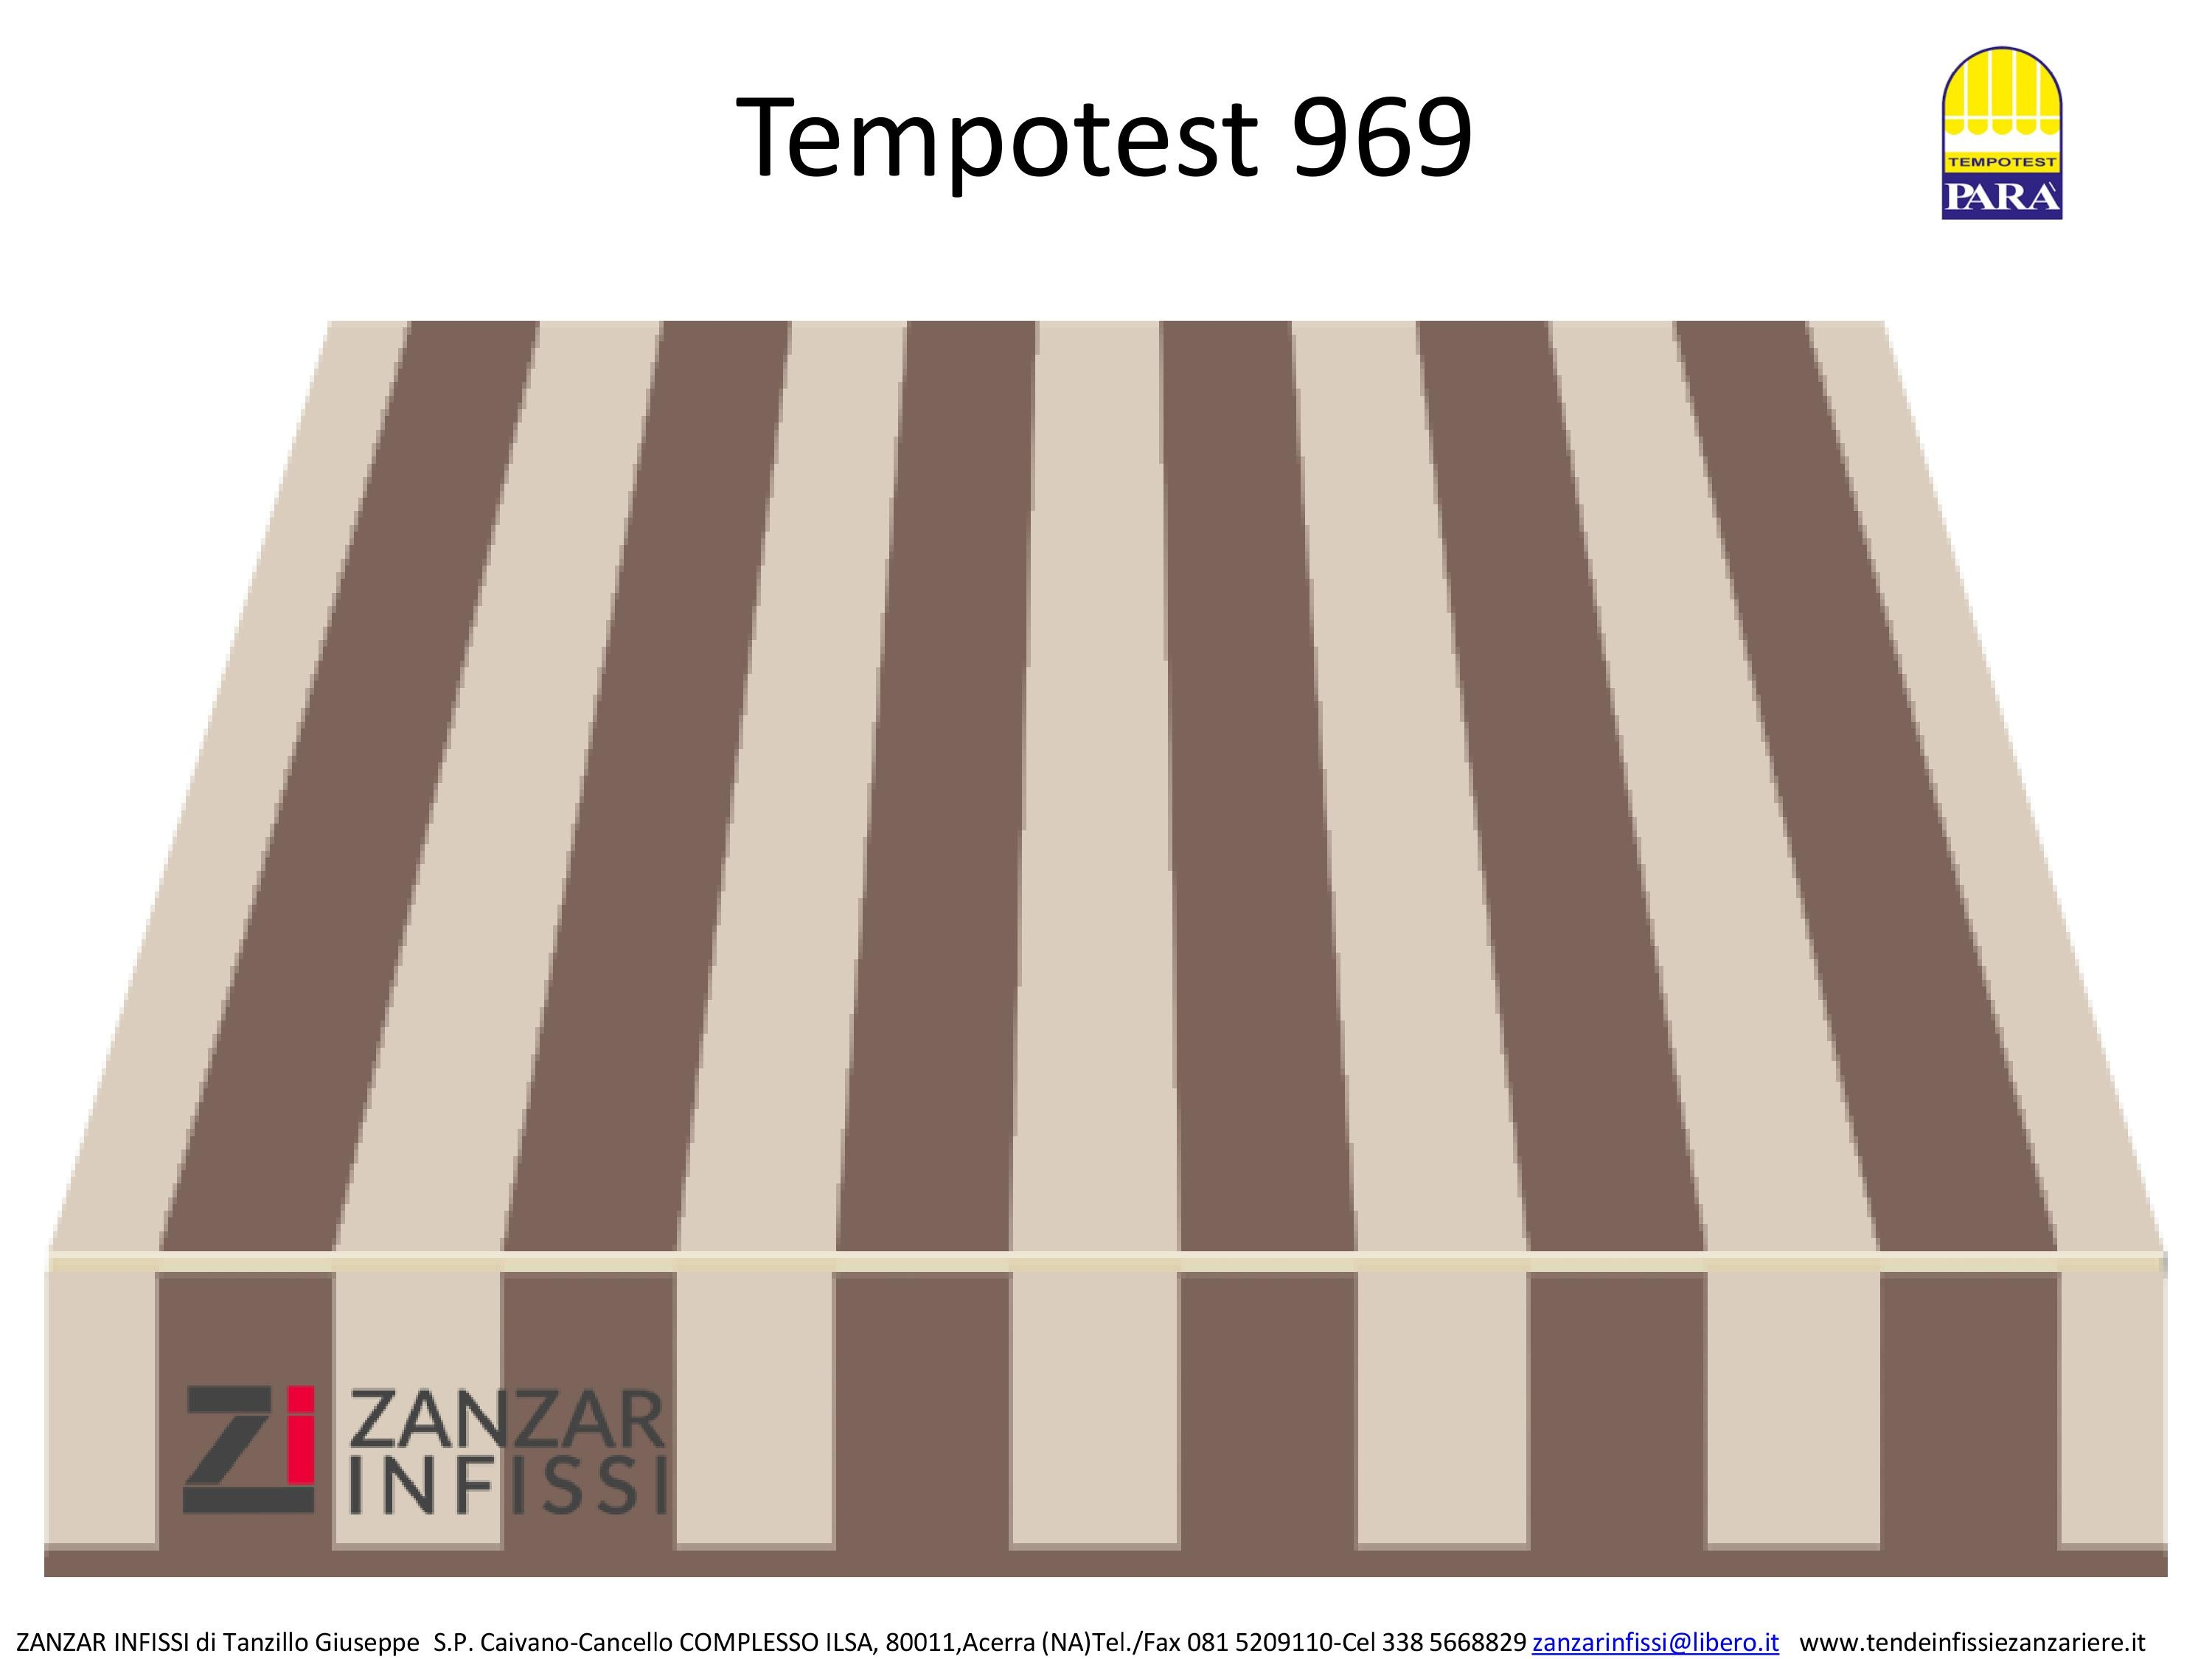 Tempotest 969